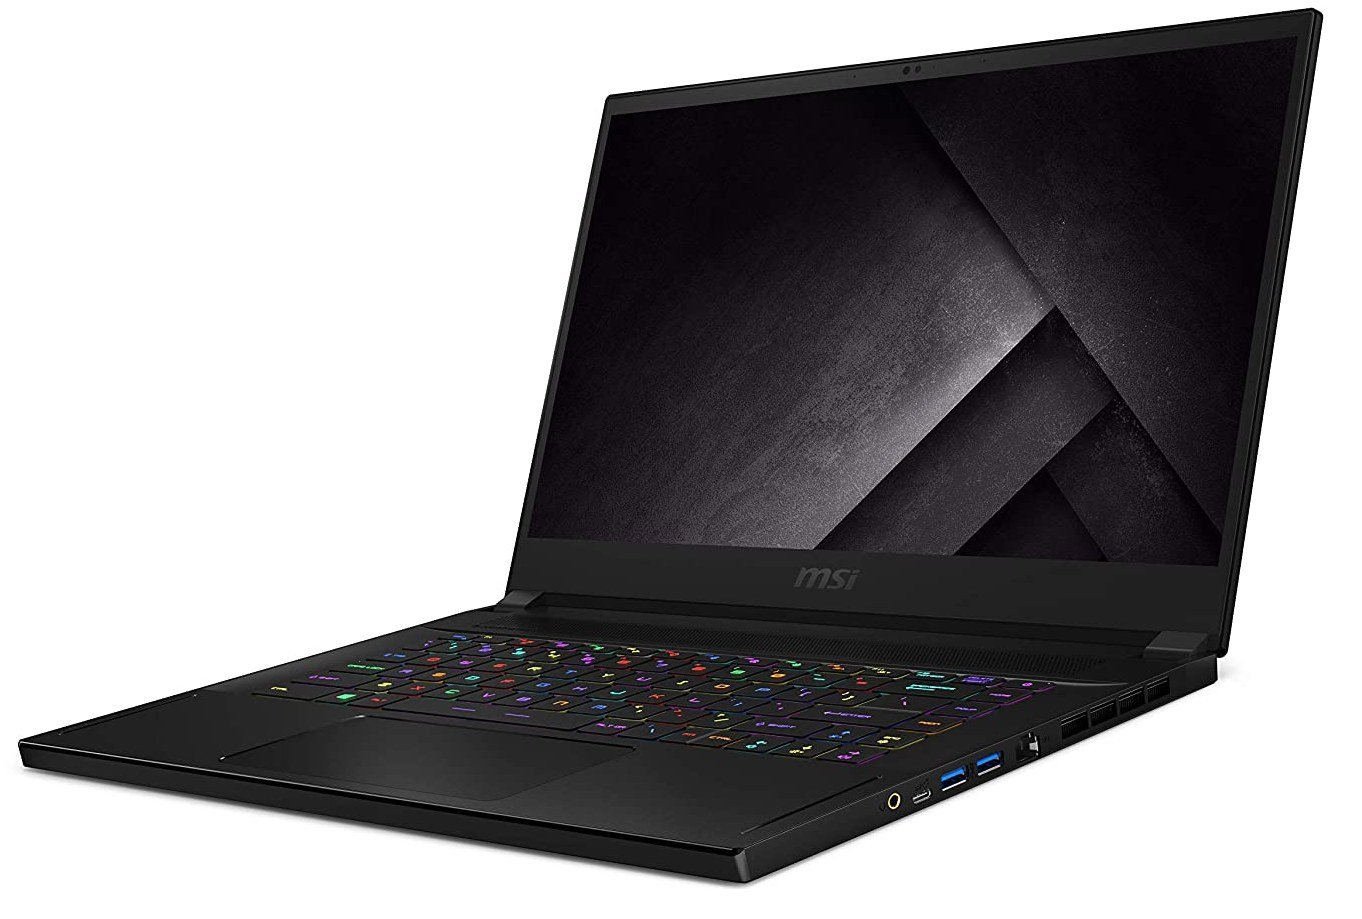 MSI GS66 Stealth 10SGS-031 with RTX 2080 S has many useful ports